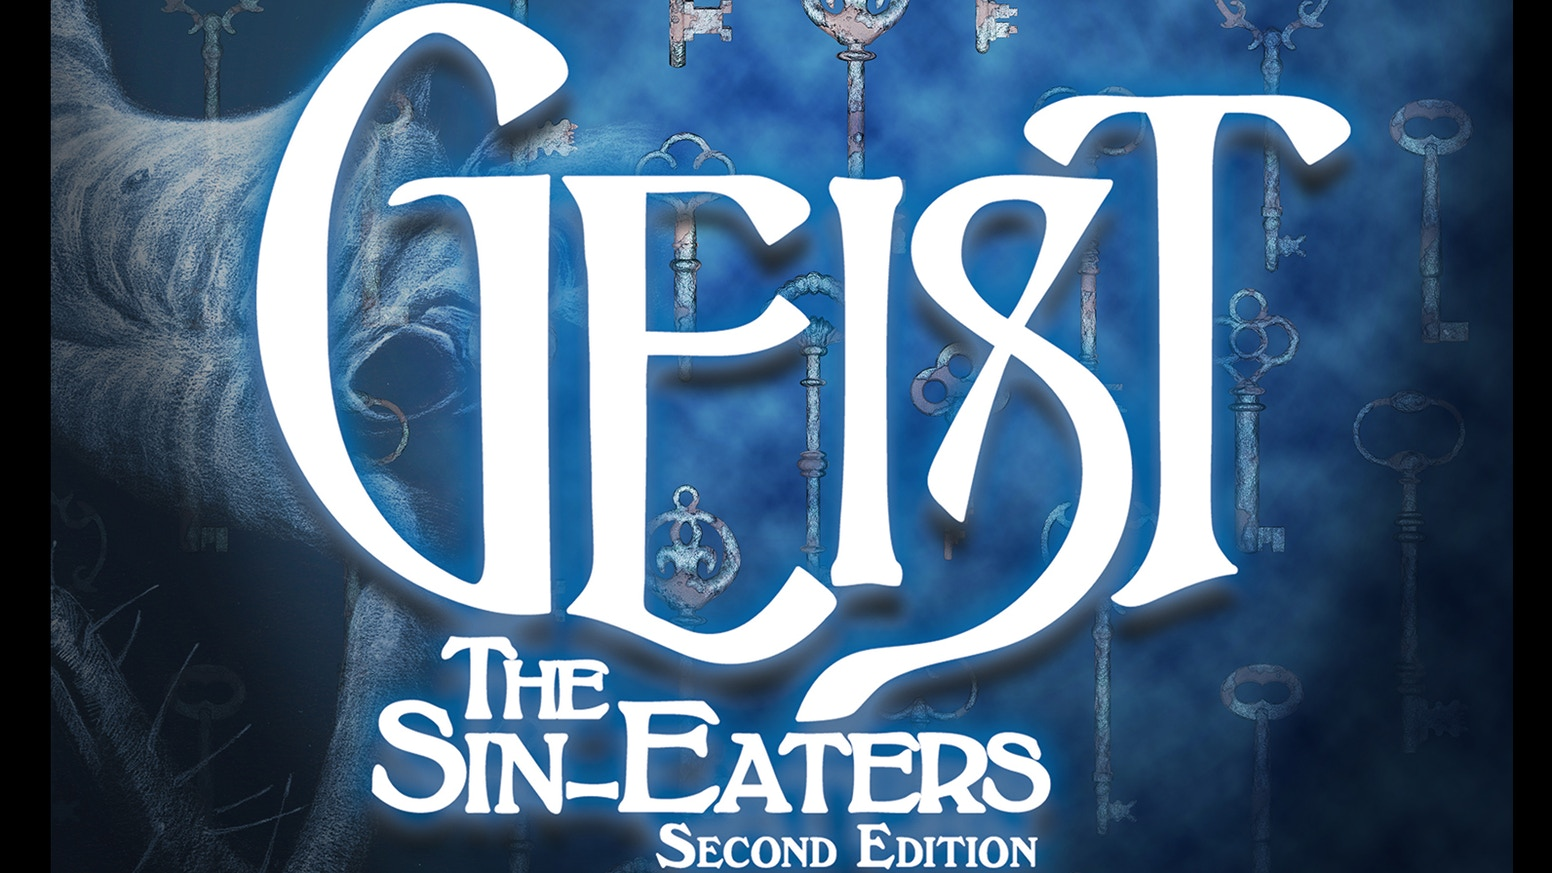 Geist: The Sin-Eaters 2nd Edition by Richard Thomas